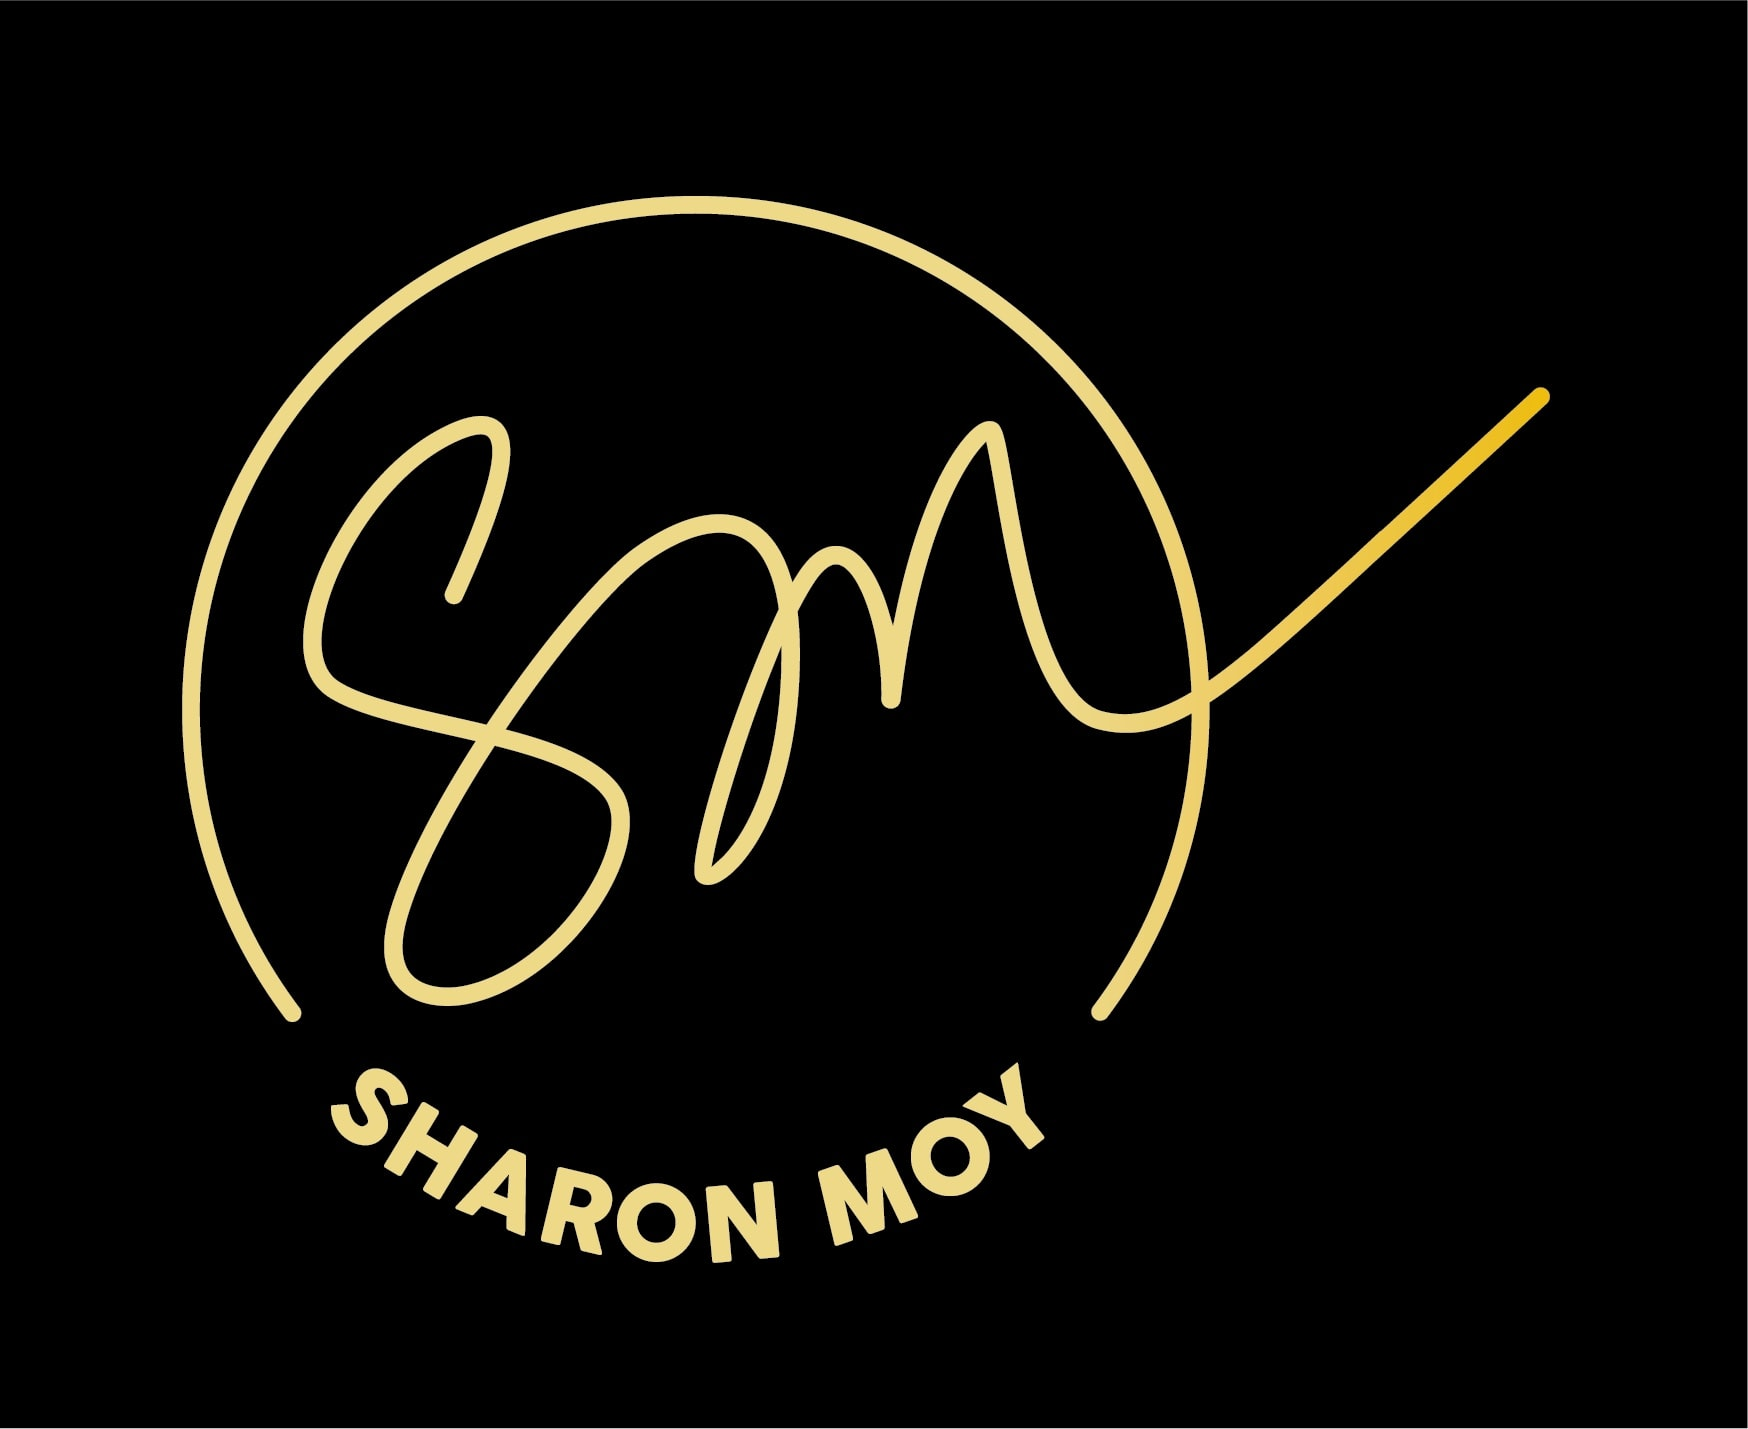 Go to Sharon Moy's profile